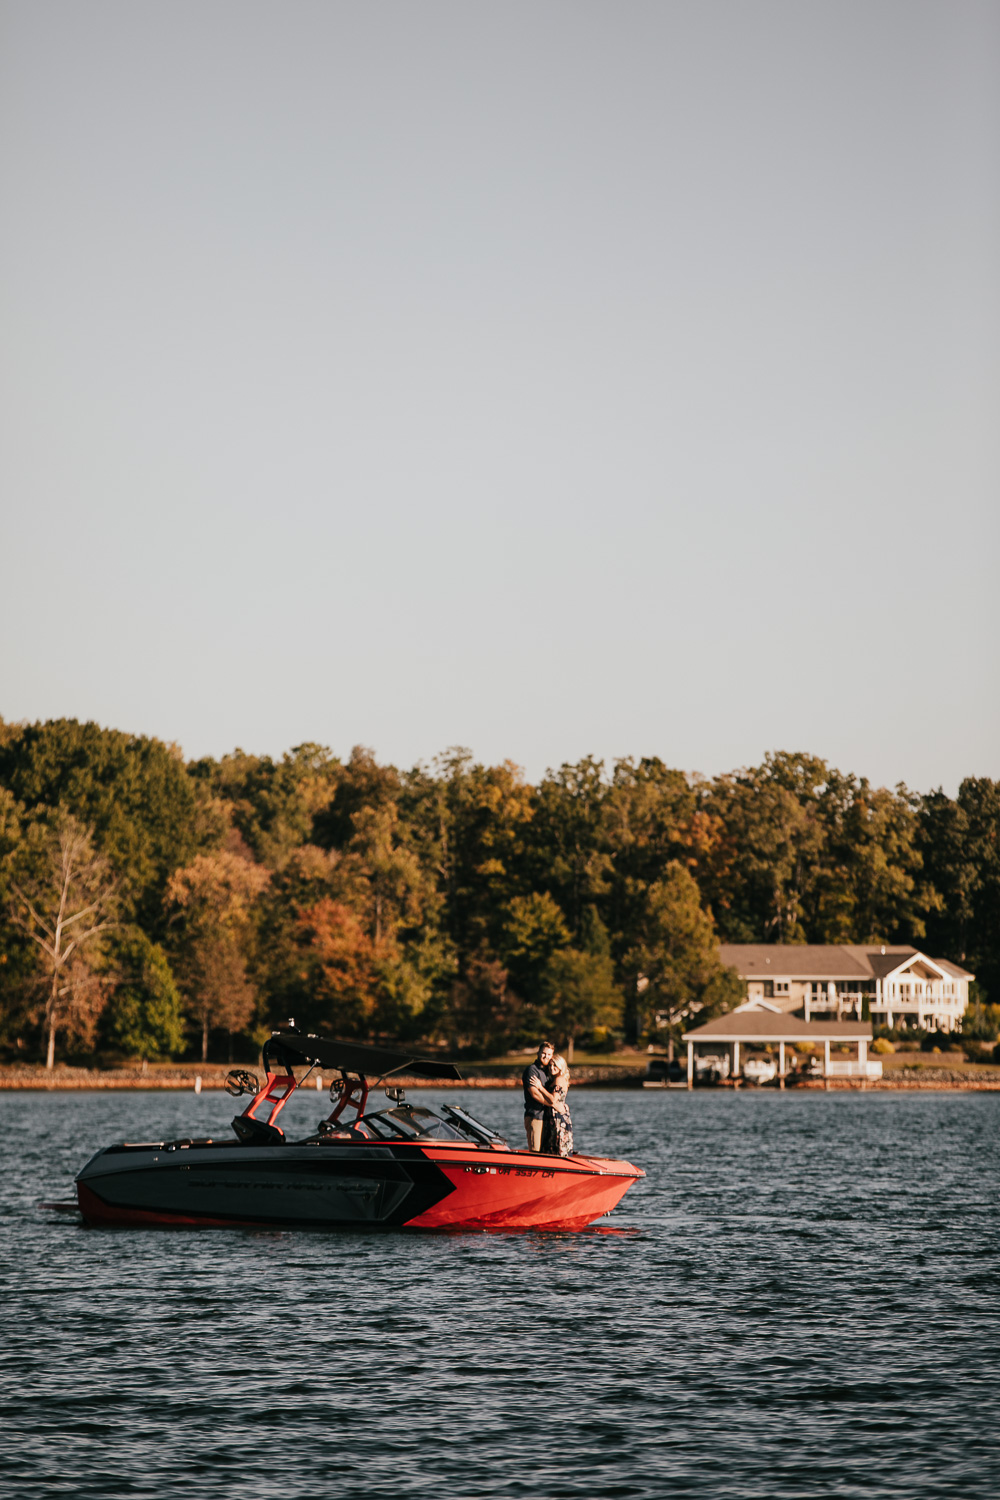 Smith Mountain Lake - Engagement - Virginia - Weddings - Wedding Photographer - Pat Cori Photography.jpg